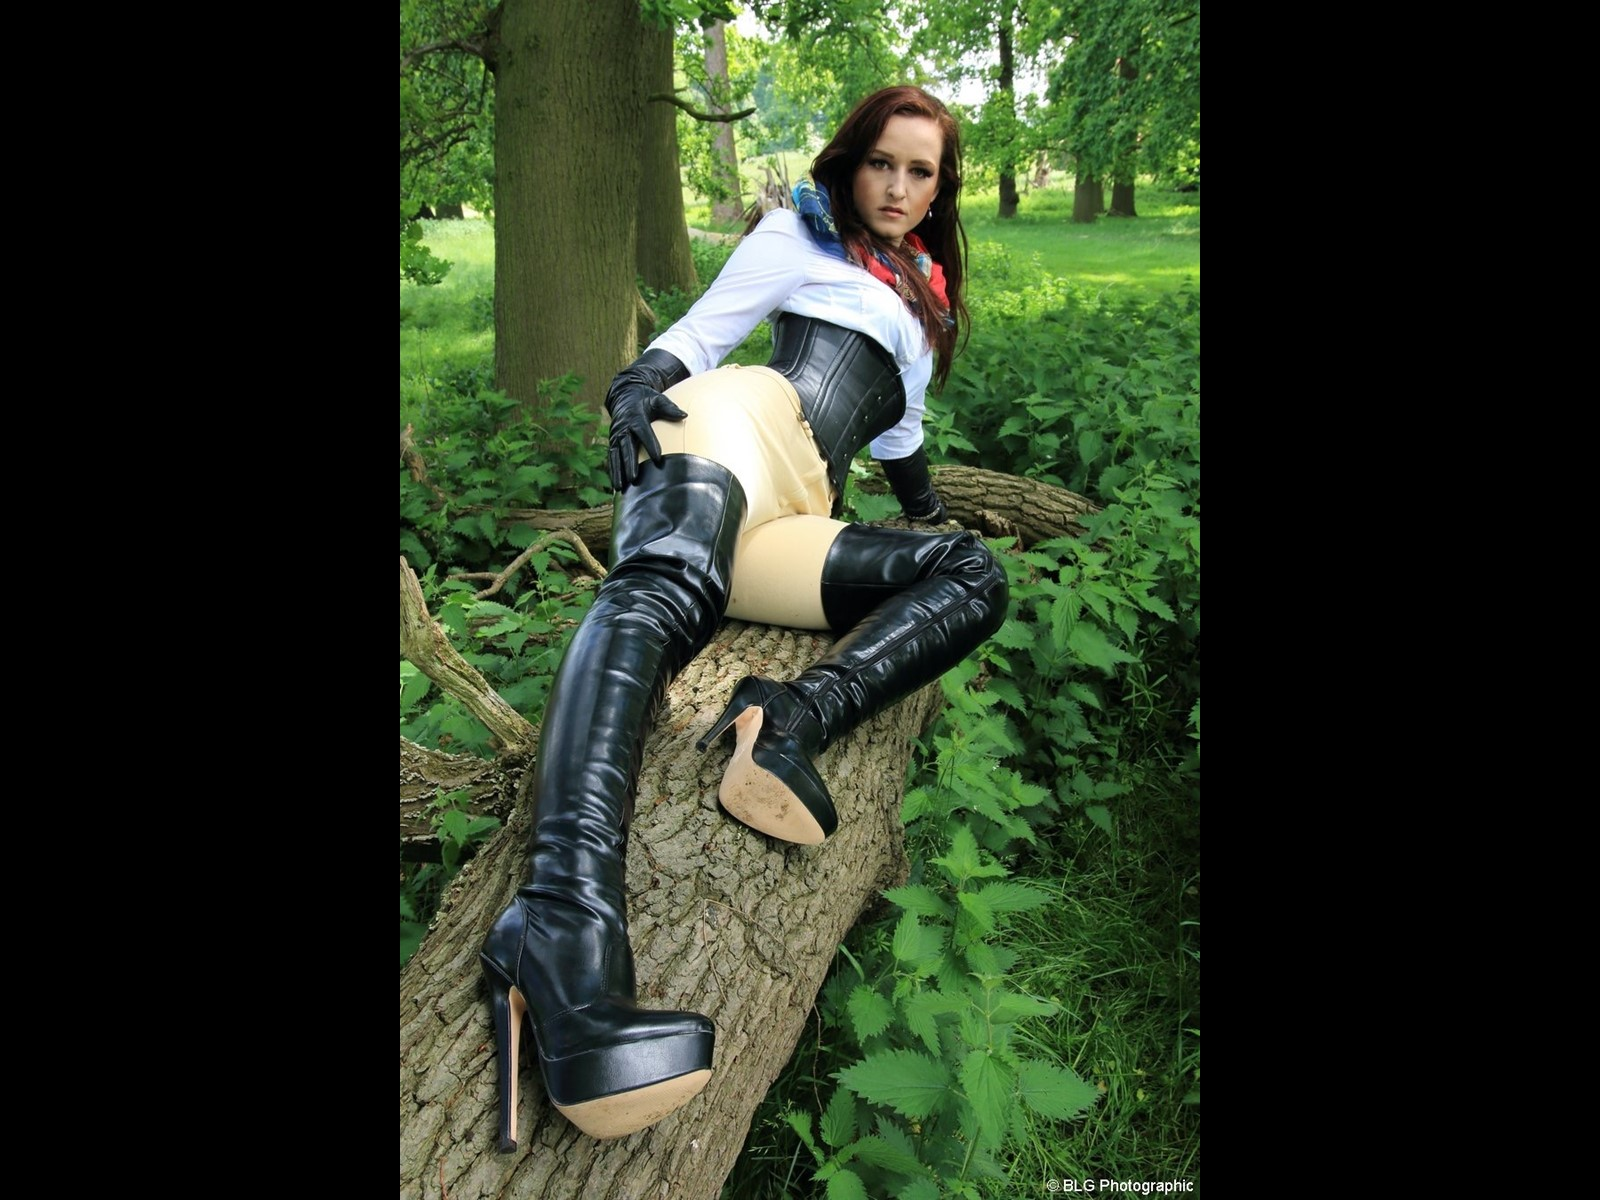 Worship My Long Legs and Leather Boots in Jodhpurs